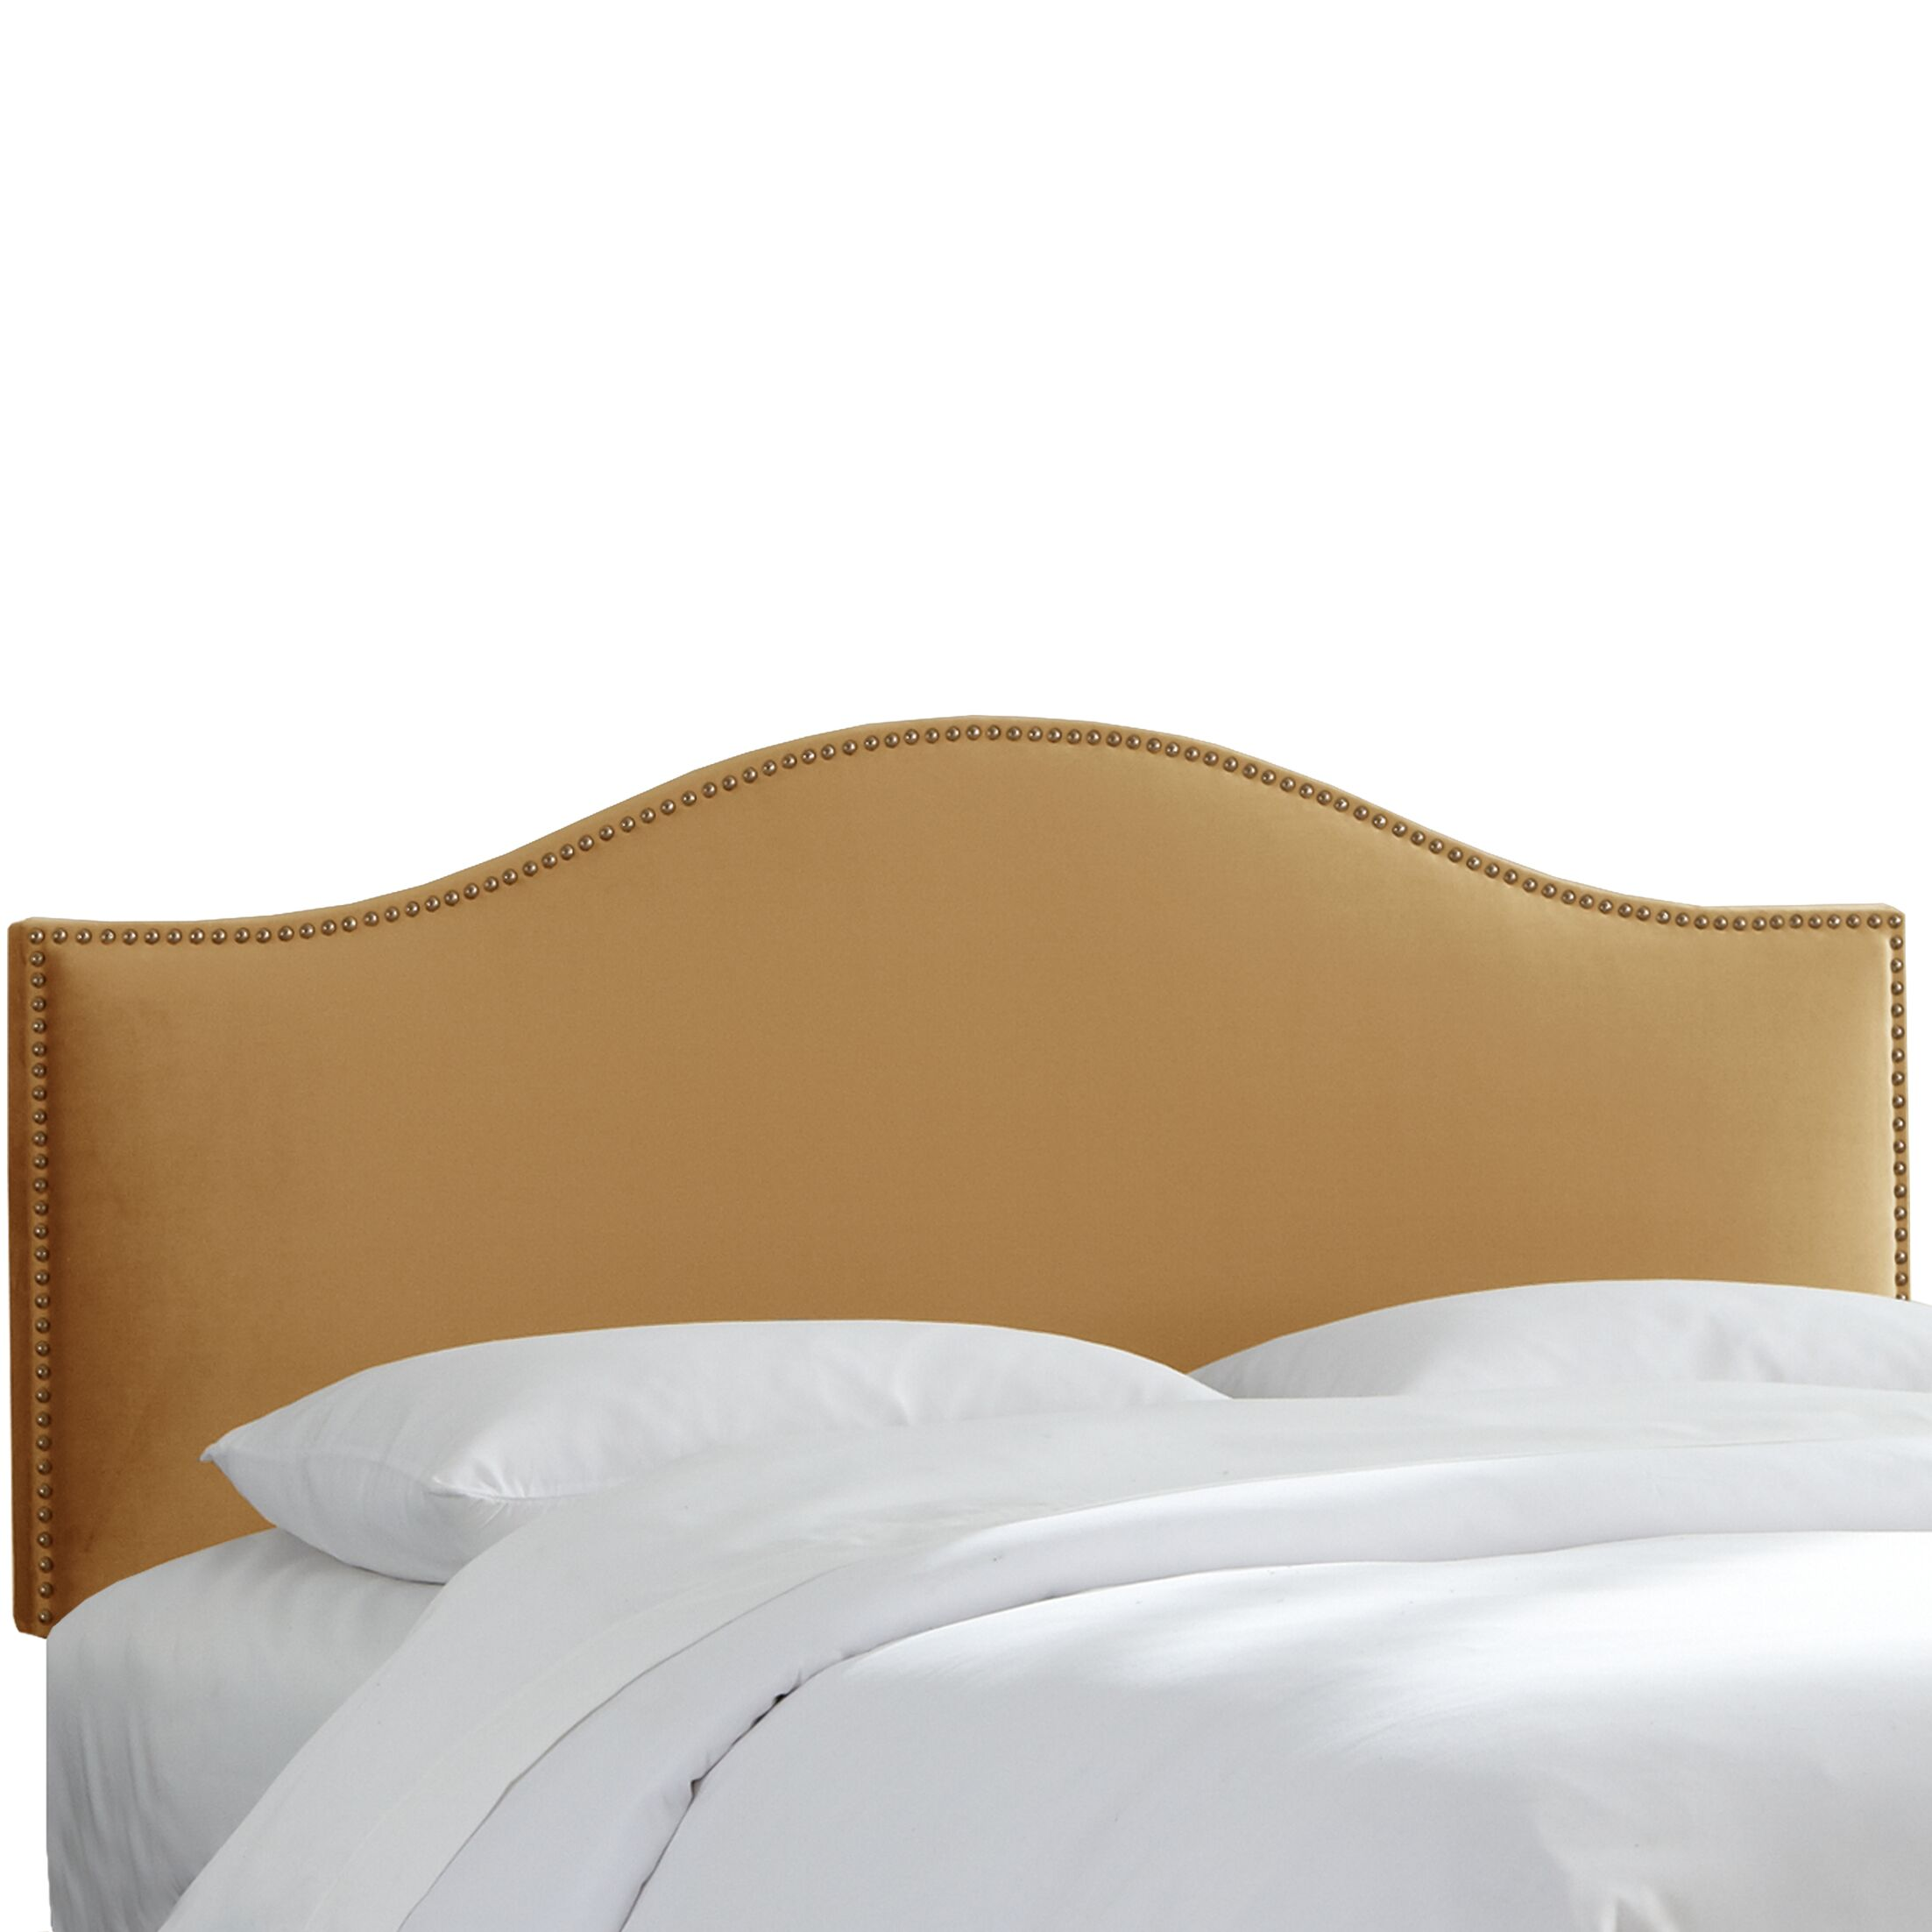 Hendry Nail Button Upholstered Panel Headboard Upholstery: Moccasin, Size: California King